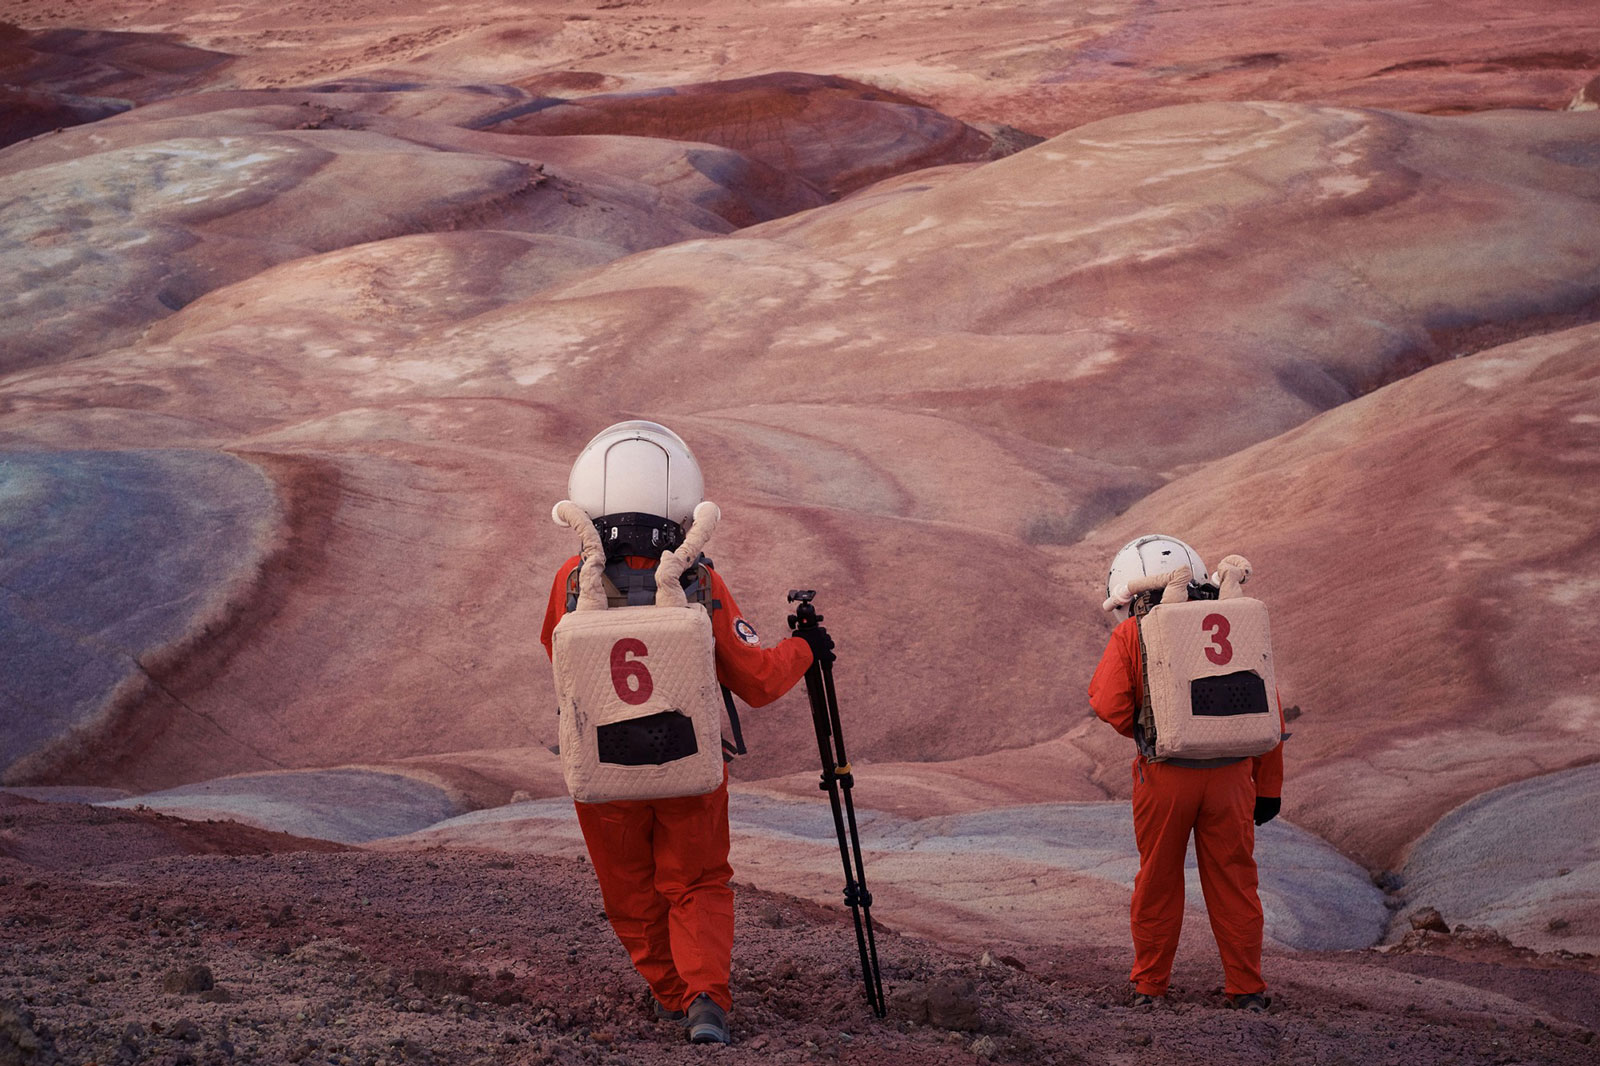 two astronauts step out into a surreal mars-like landscape